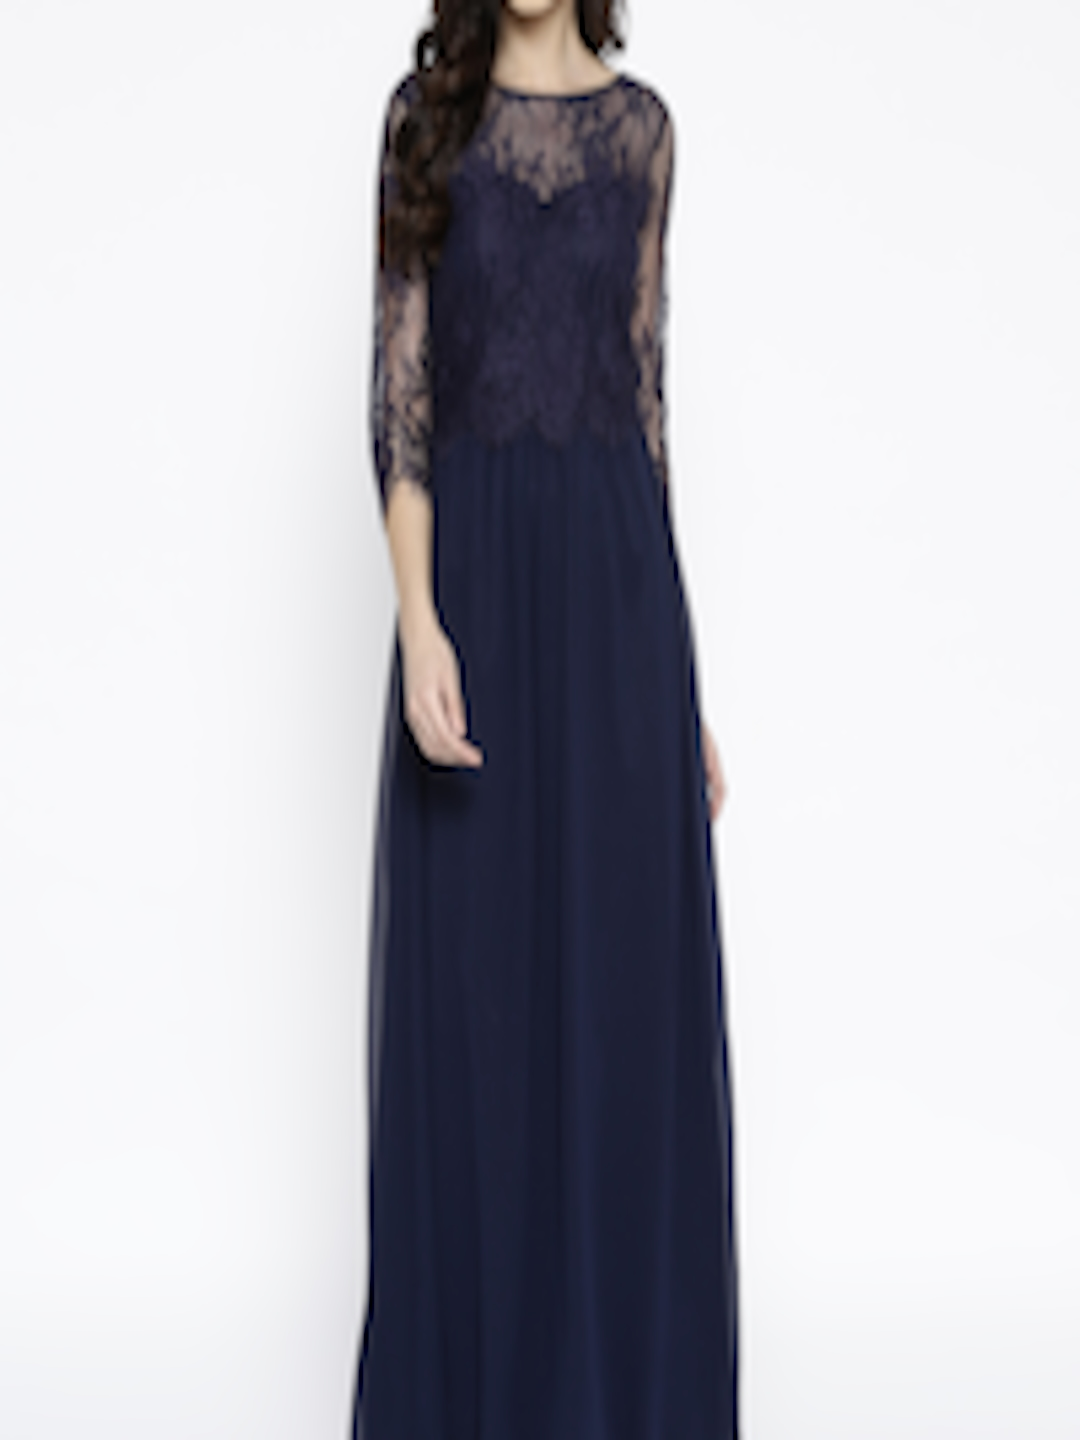 Buy DOROTHY PERKINS Women Navy Blue Solid Maxi Dress ...